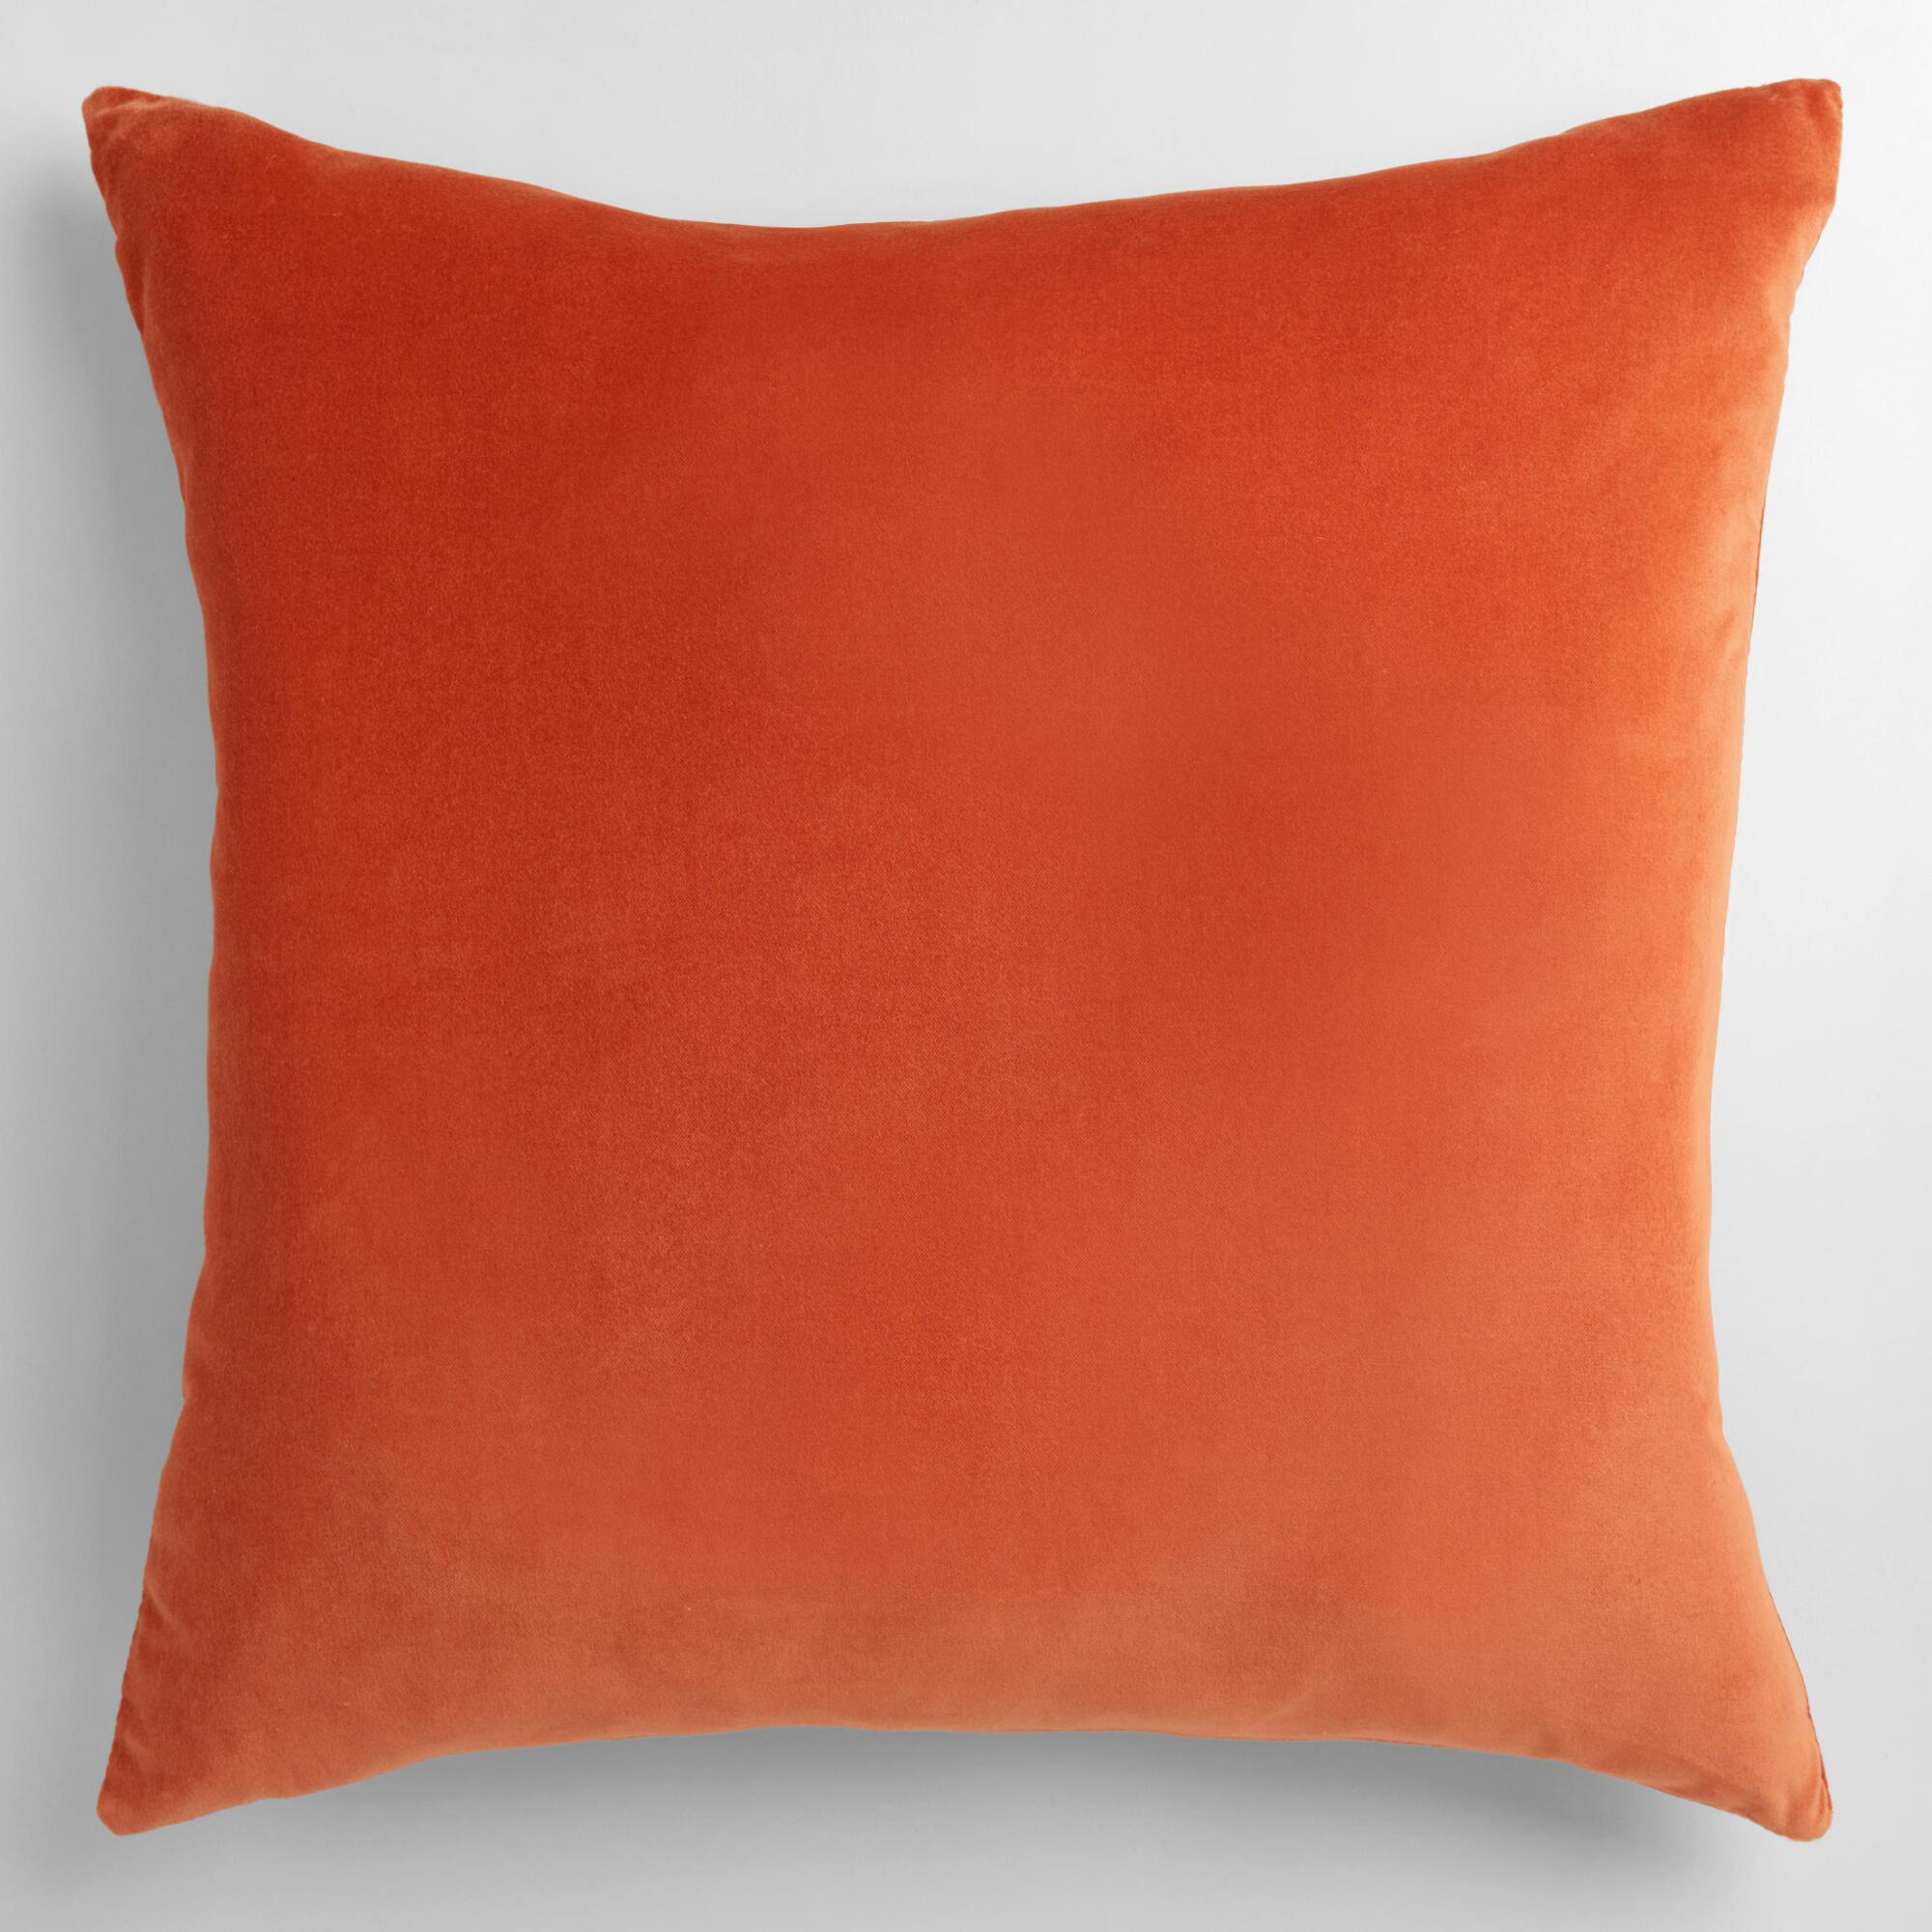 Throw Pillows Velvet : Orange Velvet Throw Pillow World Market